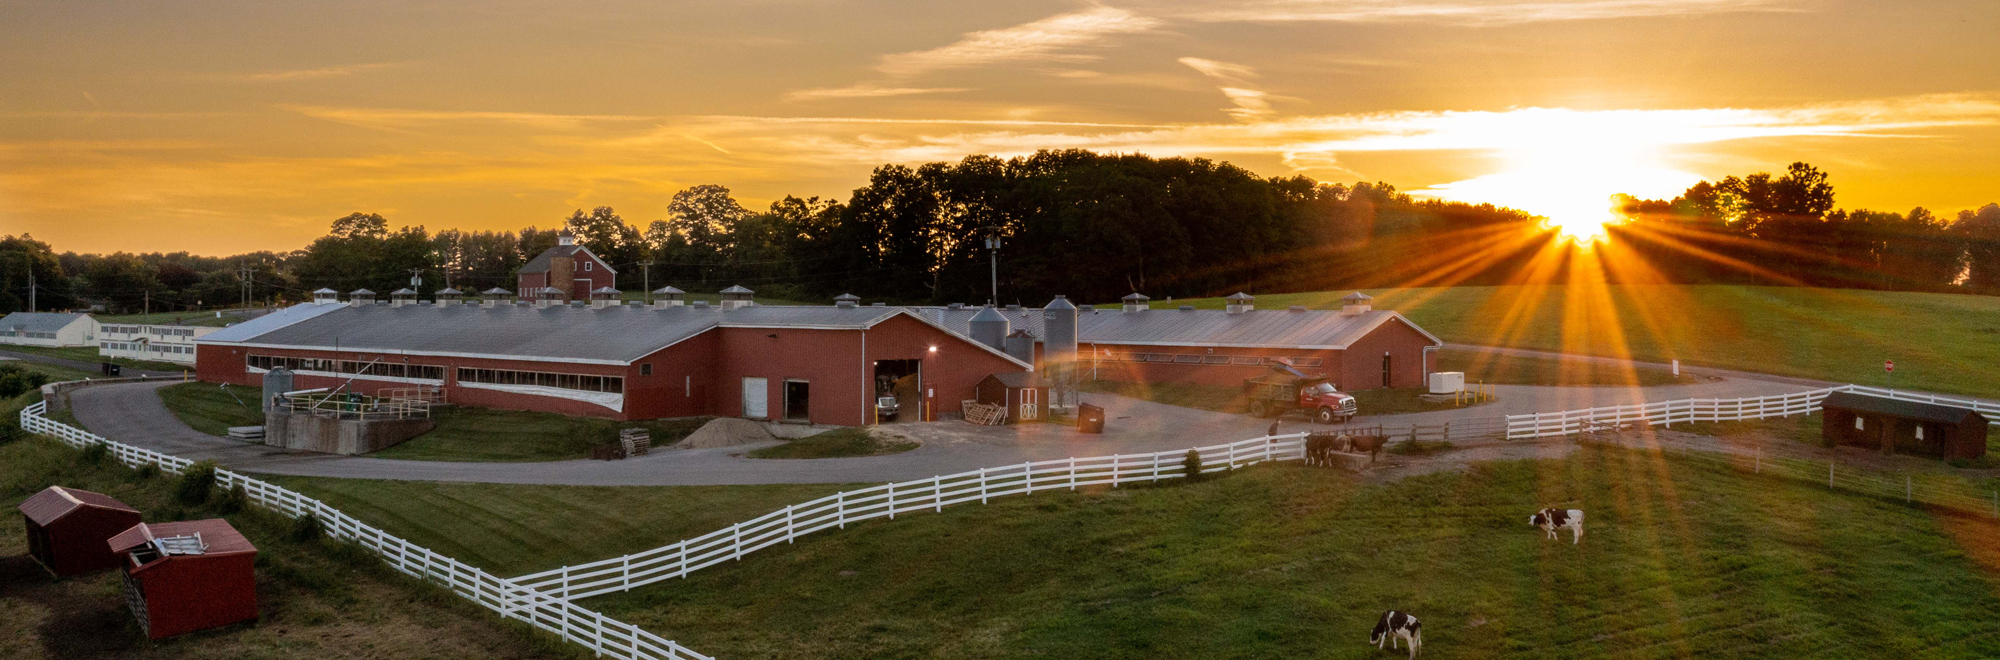 Dairy Center at sunset